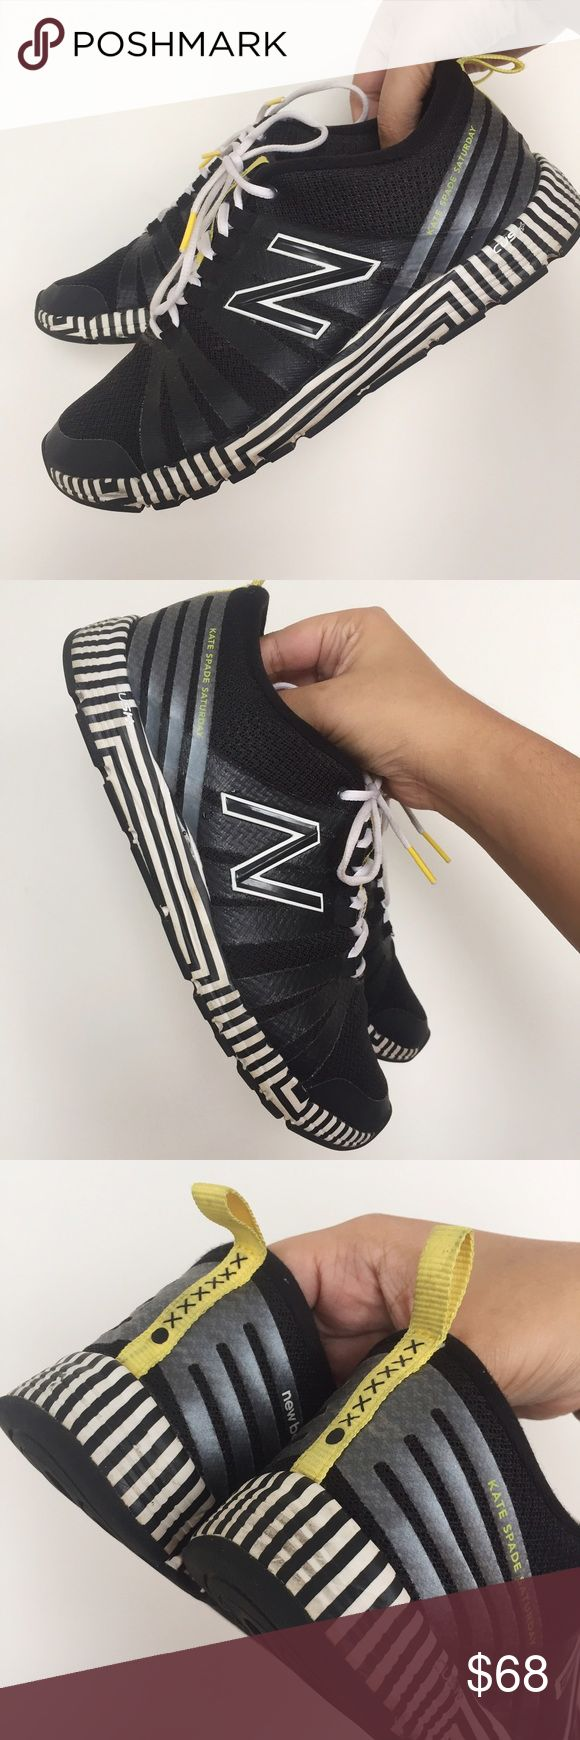 Kate Spade Saturday x New Balance 811 Sneakers Kate Spade Saturday was the sister (daughter?) to Kate Spade NY. The line was discontinued in early 2015, and was incorporated into the main Kate Spade brand. These were in collaboration w/ New Balance in Winter '14. They're so chic and comfortable! I haven't reached for them in months. They are great to wear with a pair of boyfriend jeans and a tee for the casual (or lazy Sunday) look. There are dirt stains but can easily be removed with a good…